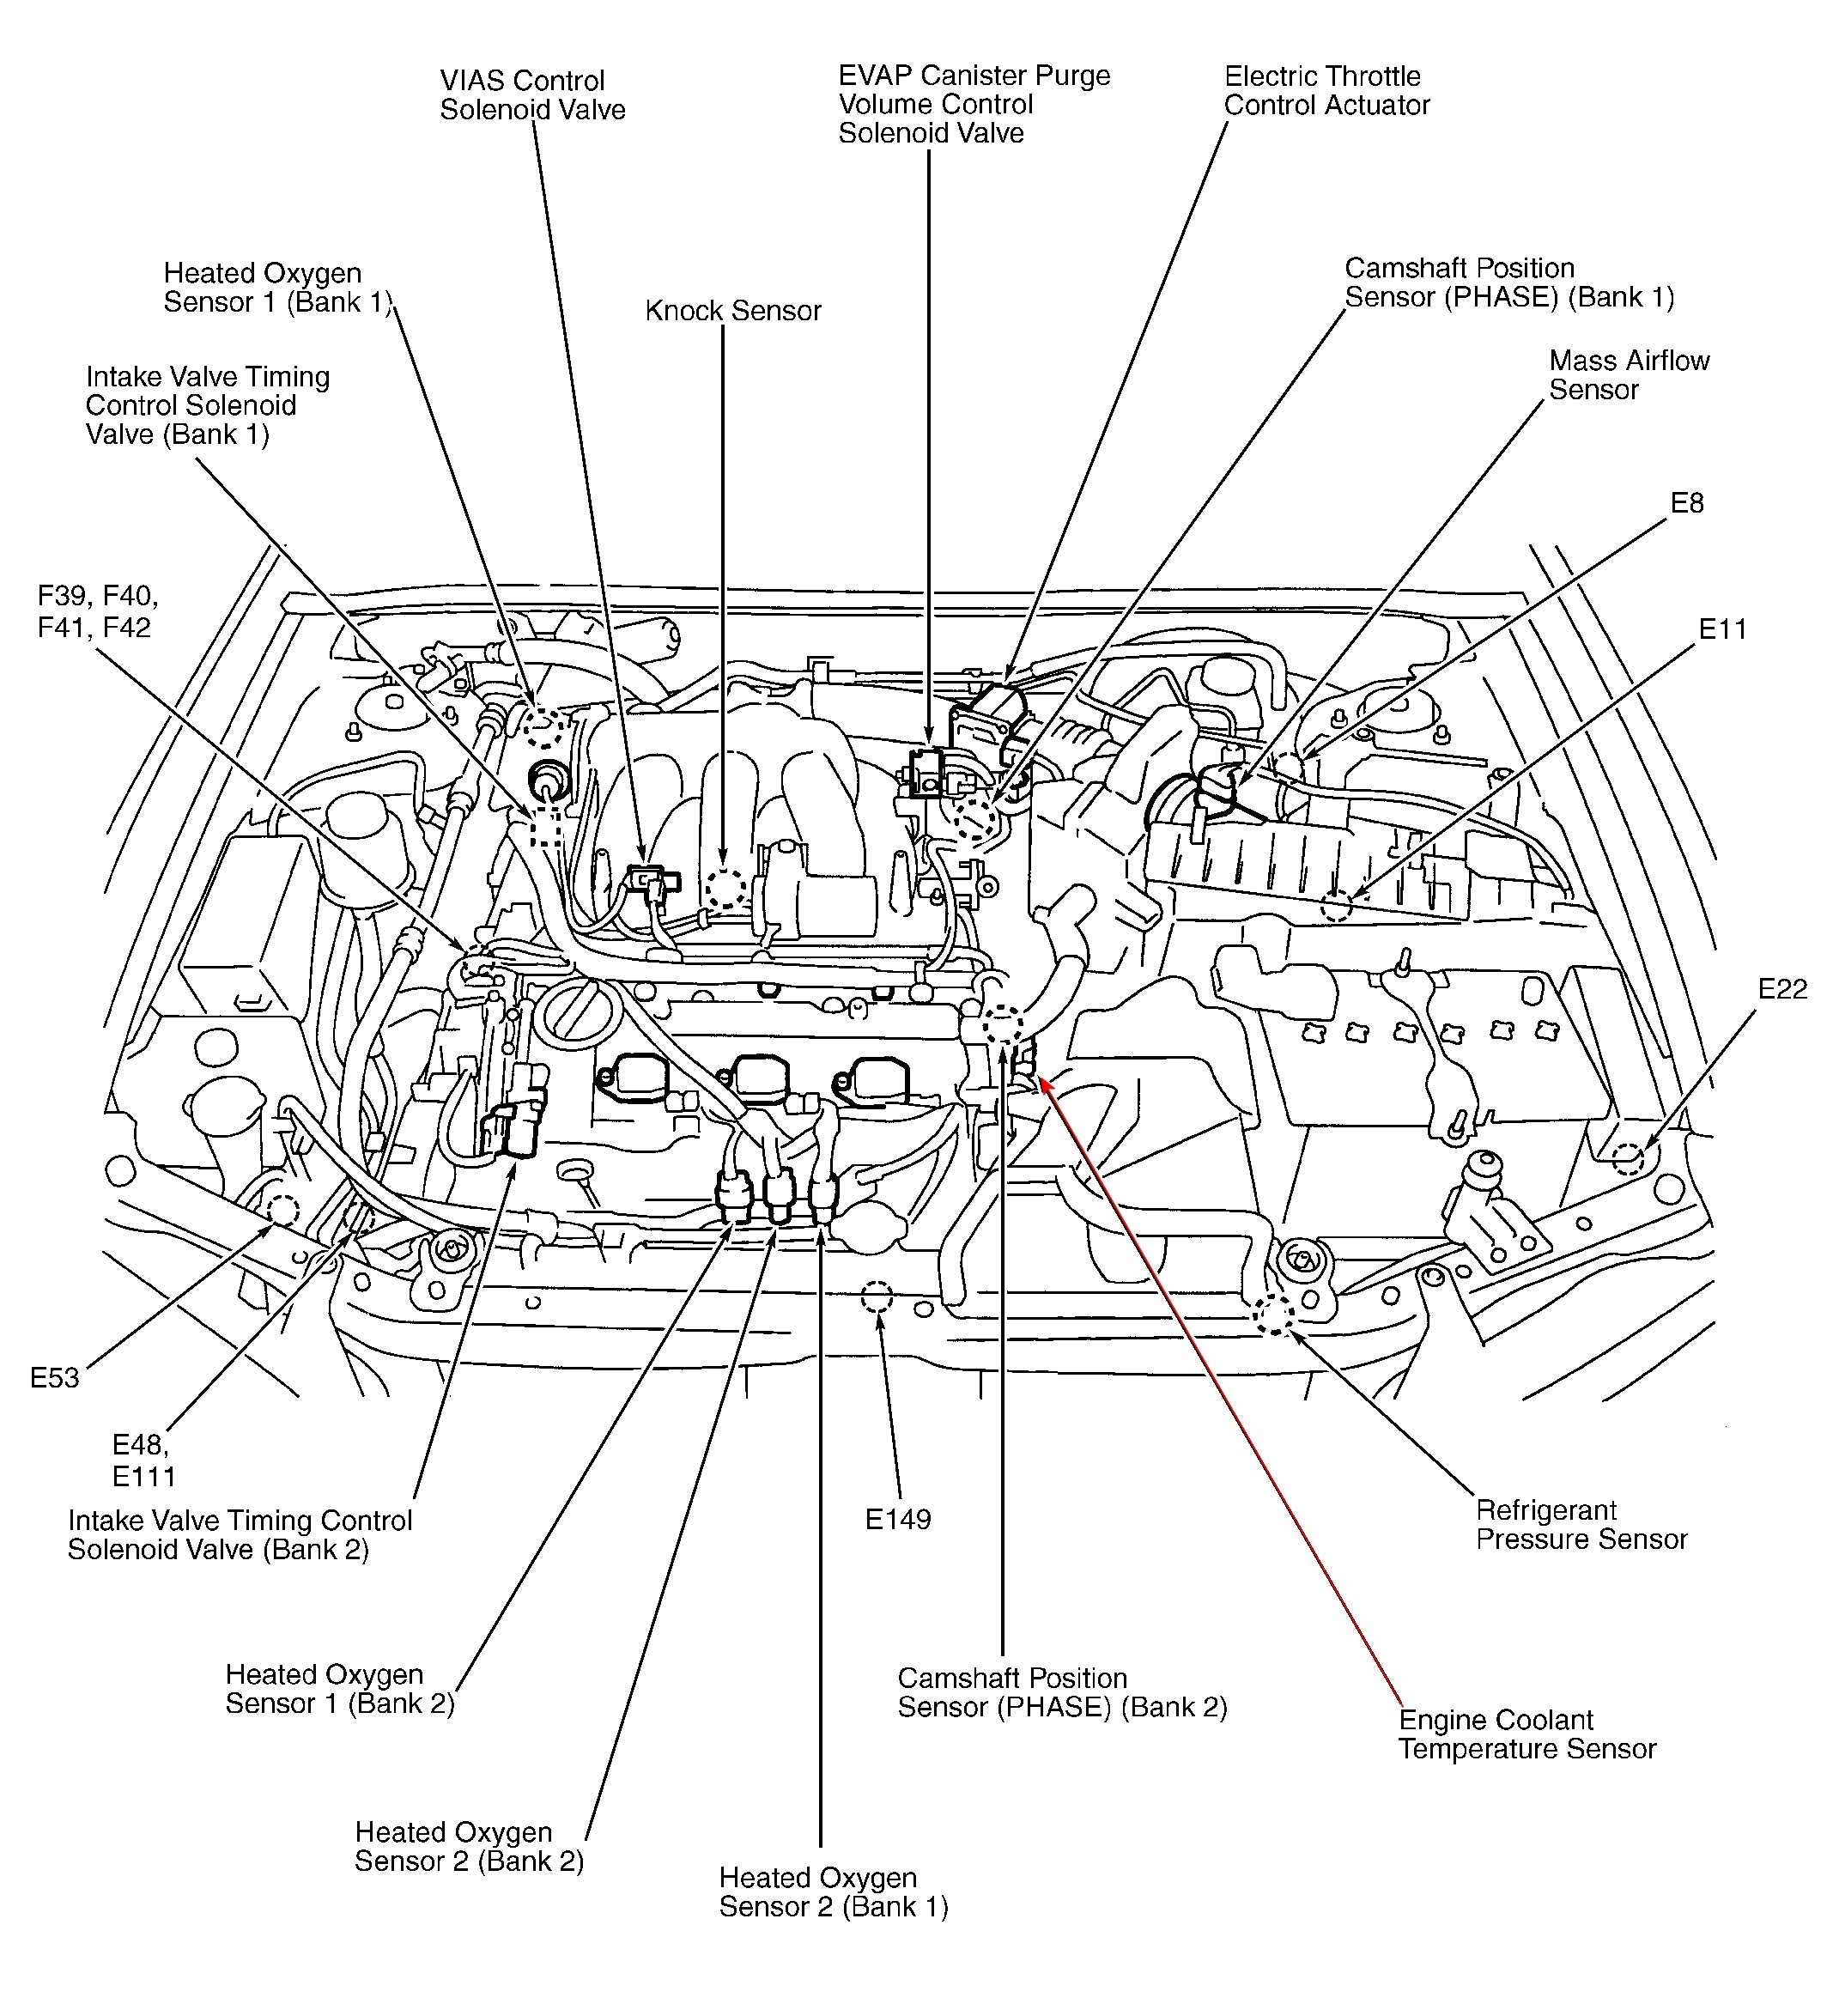 2008 Hyundai Sonata Engine Diagram Wiring Library. Hyundai Sonata Parts Diagram Online. Hyundai. 2007 Hyundai Entourage Engine Cooling System Diagram At Scoala.co